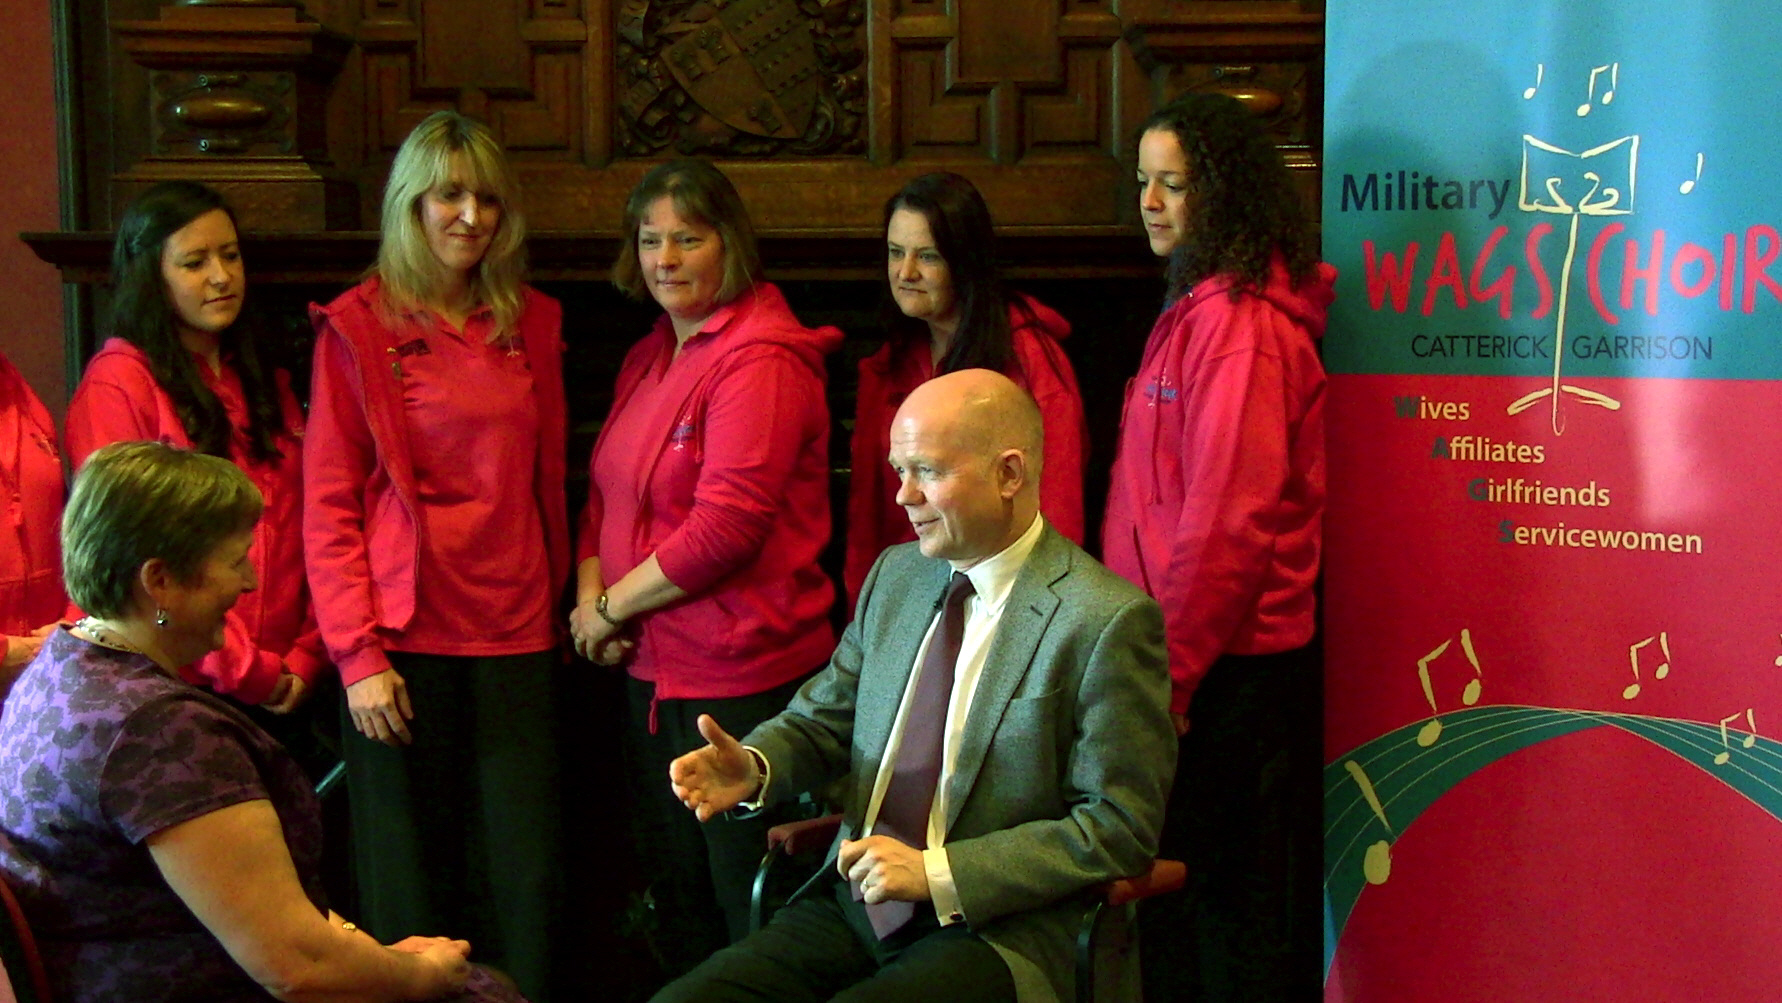 William Hague MP with WAGS choir director Carol Gedye and choir members